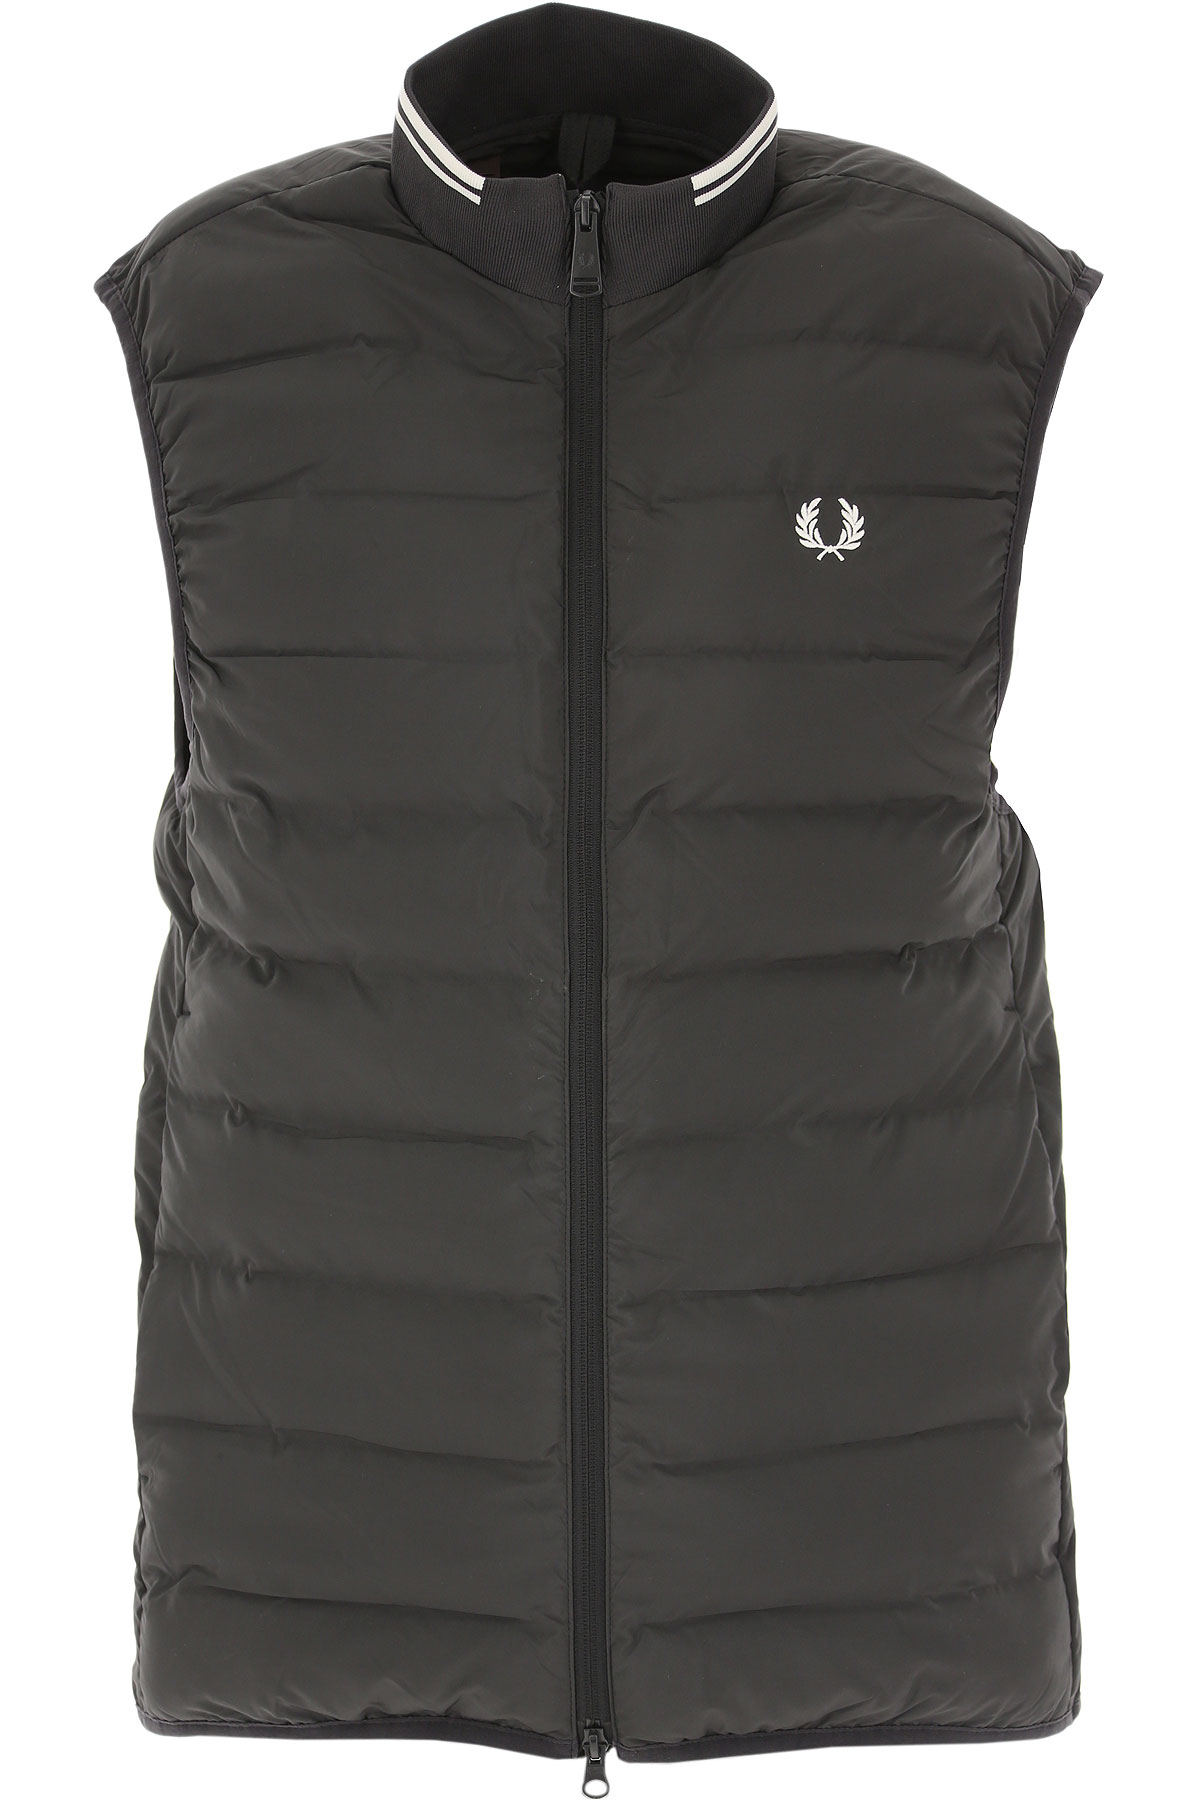 Fred Perry Jacket for Men On Sale, blackboard, polyester, 2019, M S XS